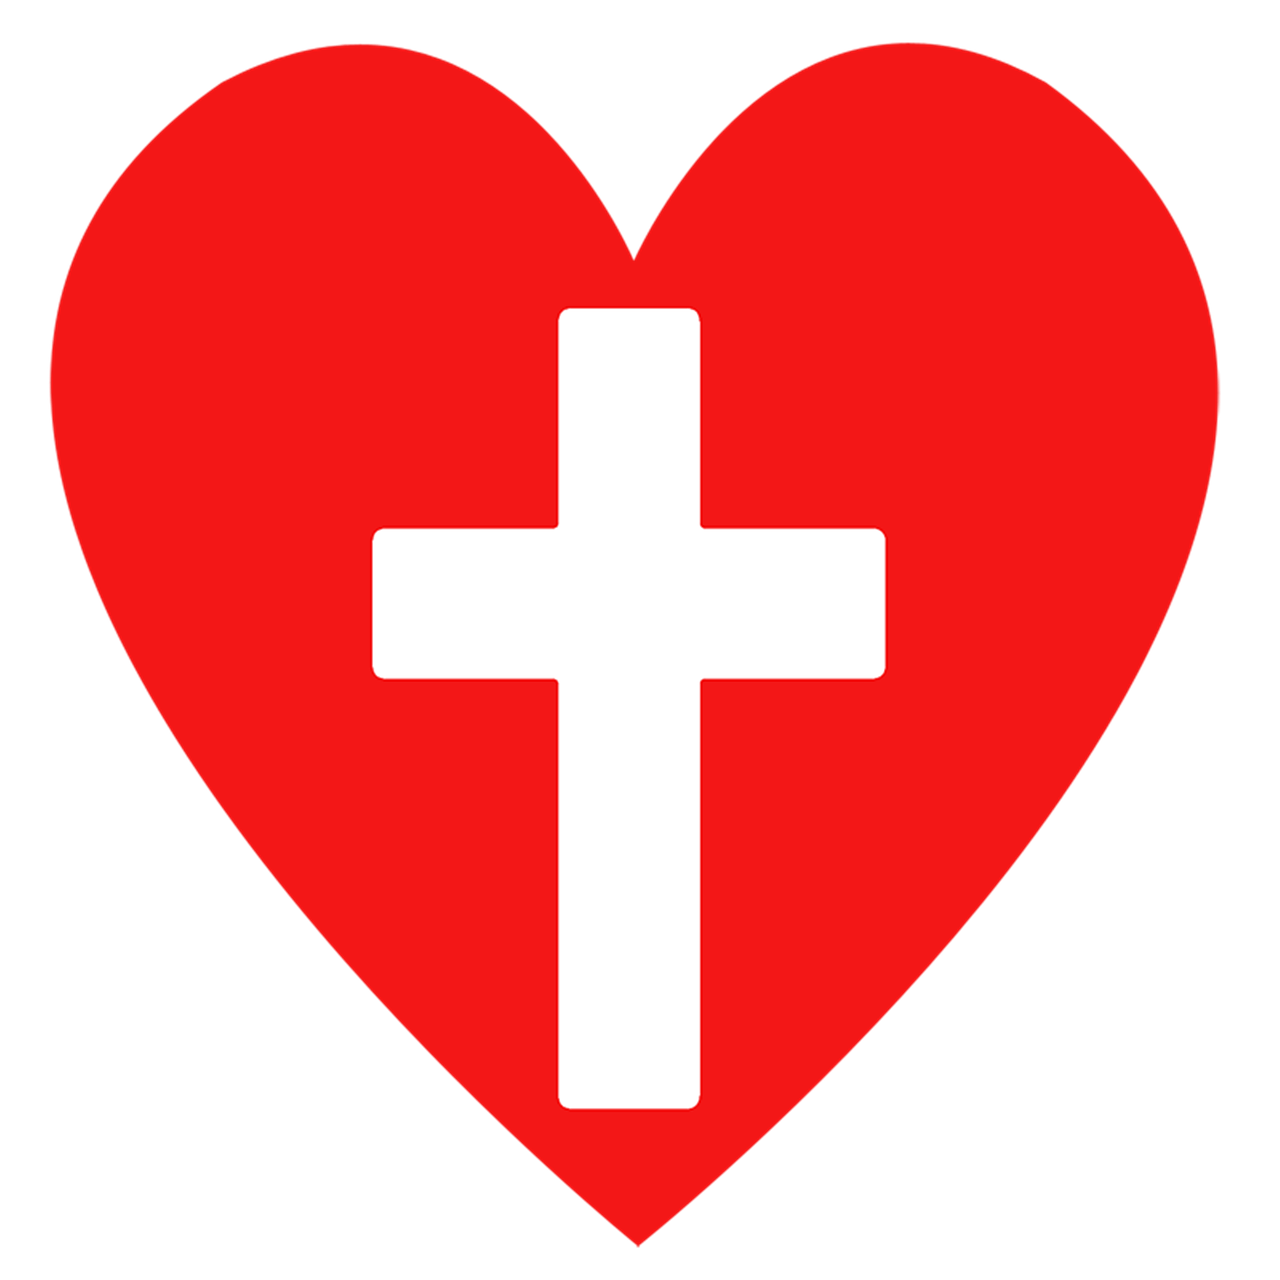 Faith clipart christianity. Is christian love different